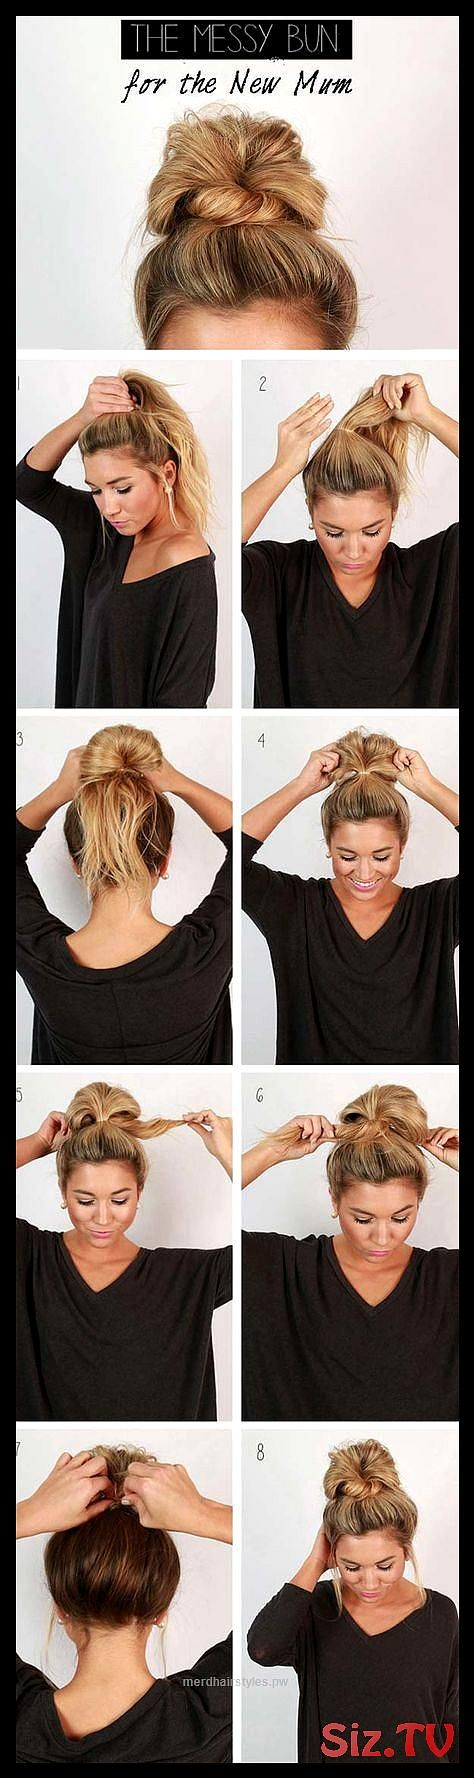 12 Super Easy Hairdos For Those Lazy Days 12 Super Easy Hairdos For Those Lazy Days These Super Easy Hairdos Are Perfect When You Have Those Lazy Days...